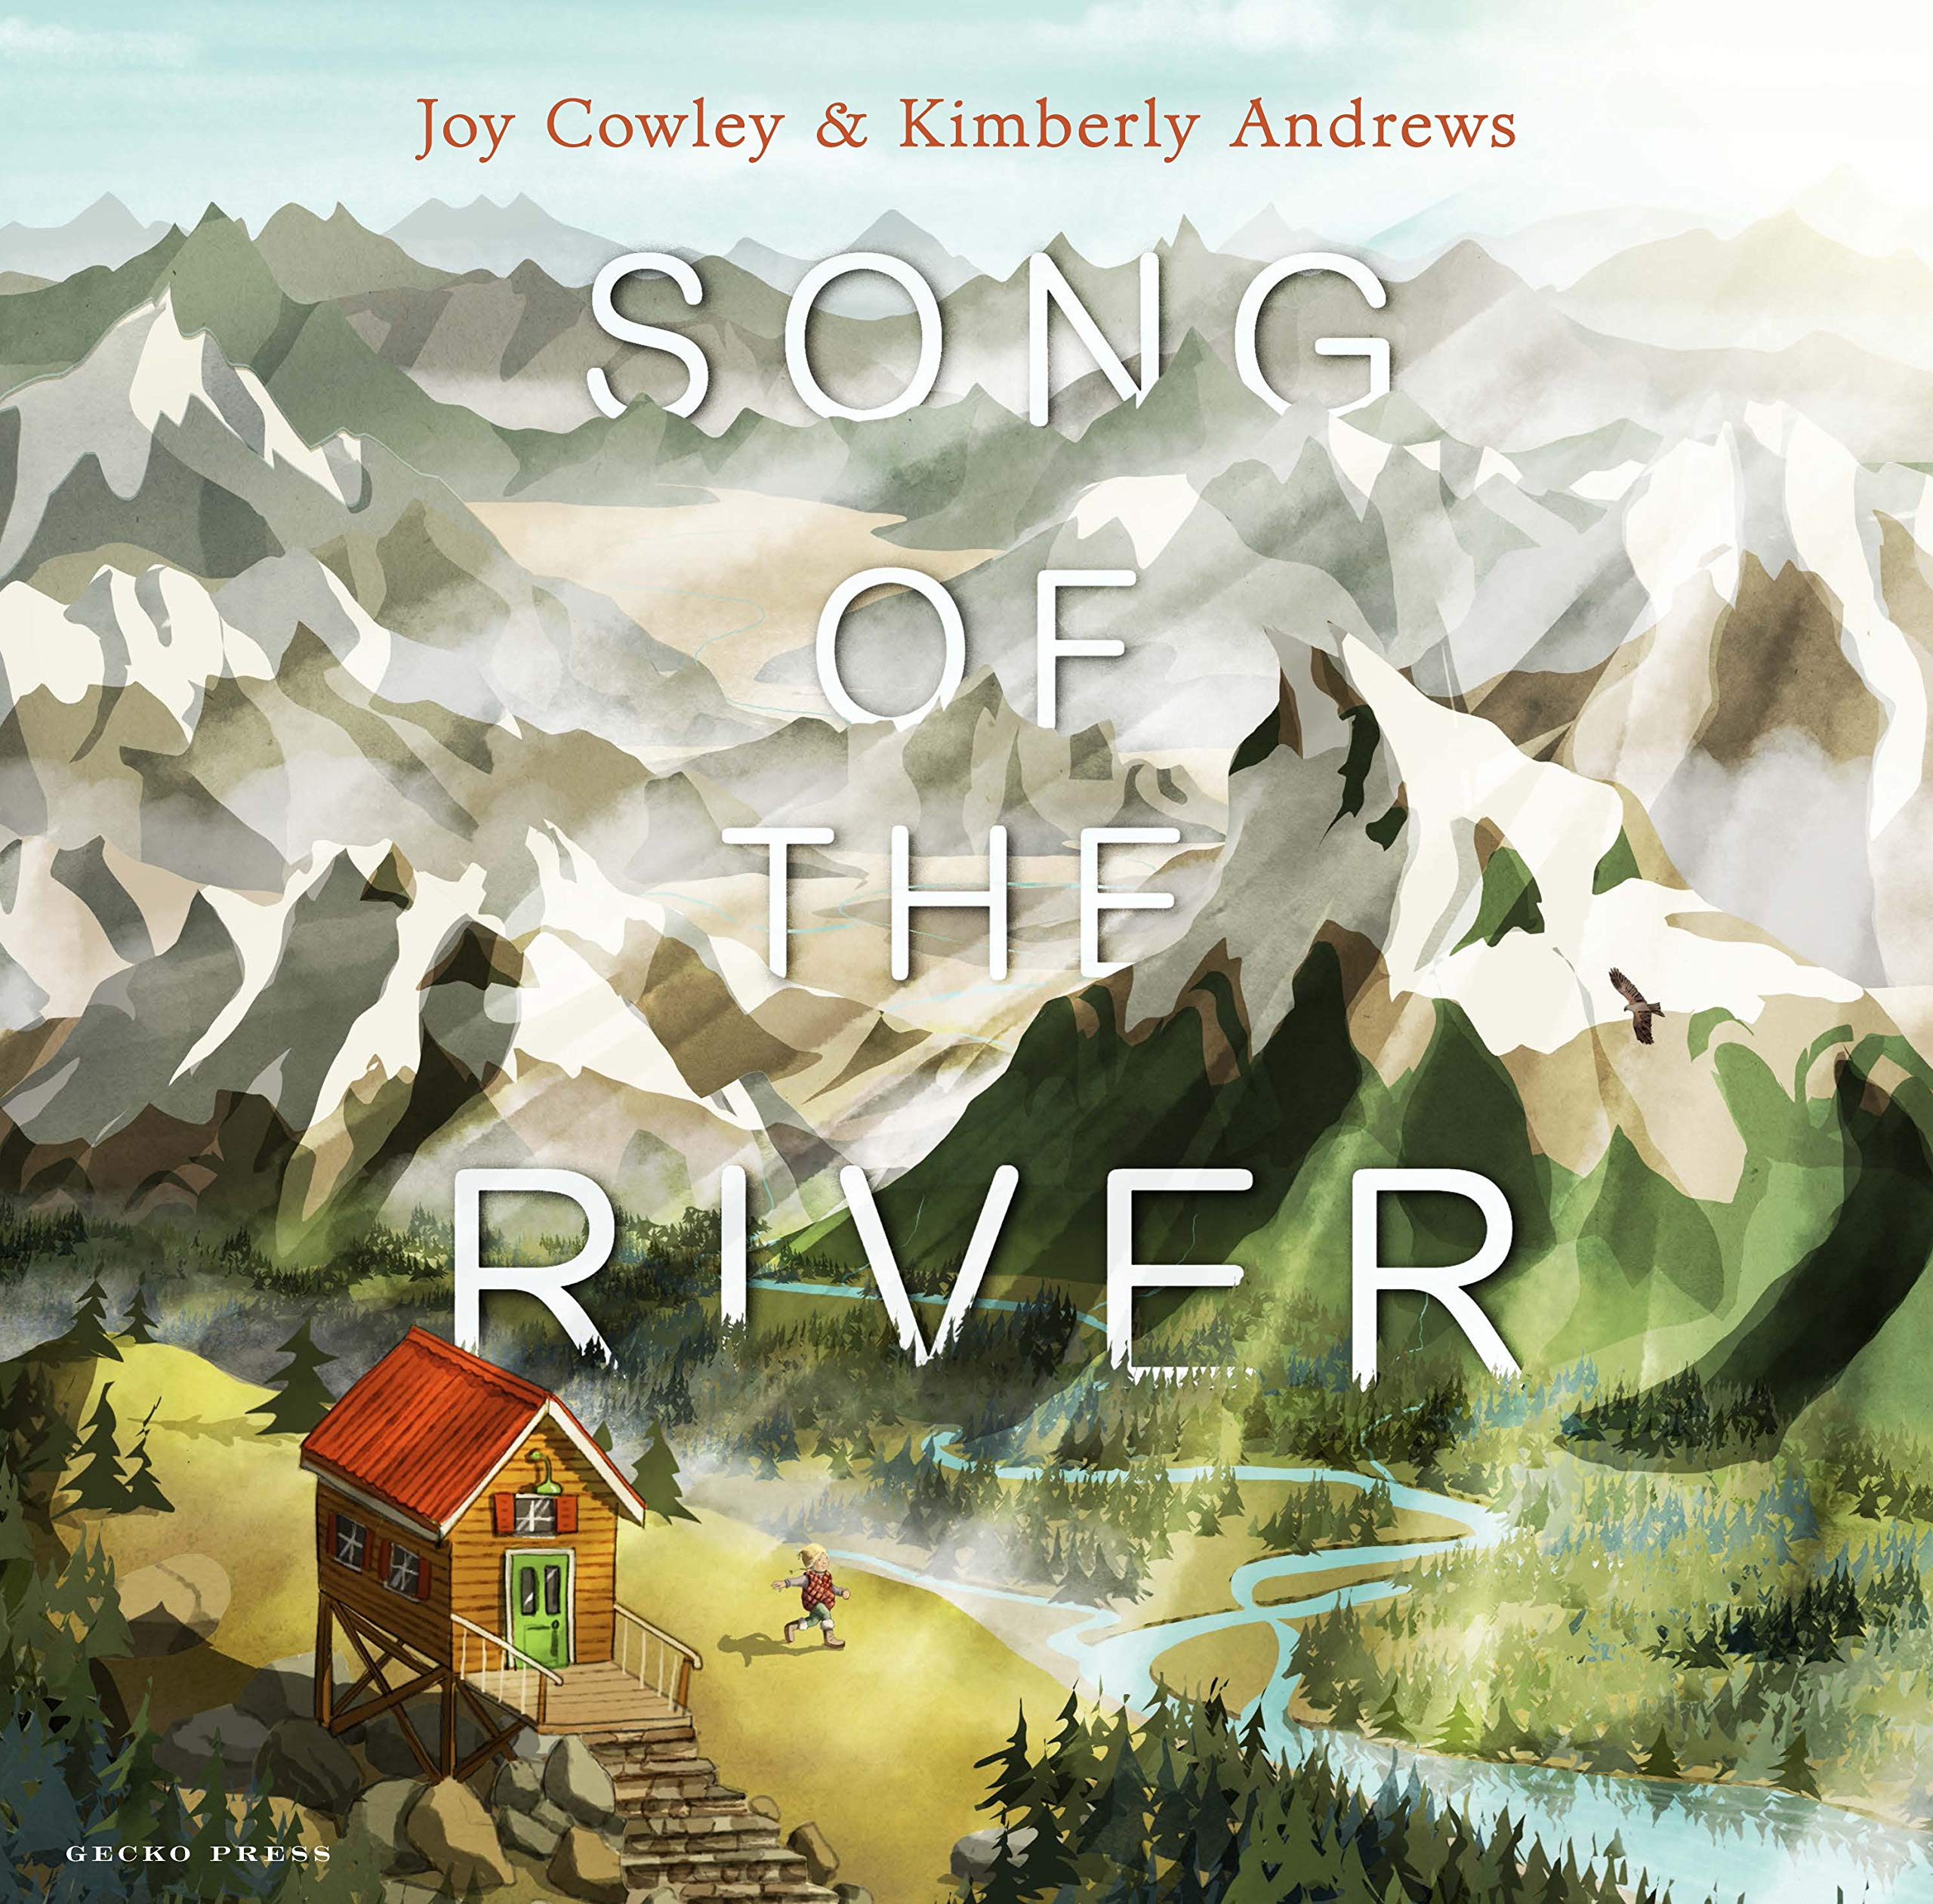 Song of the River: Cowley, Joy, Andrews, Kimberly: 7